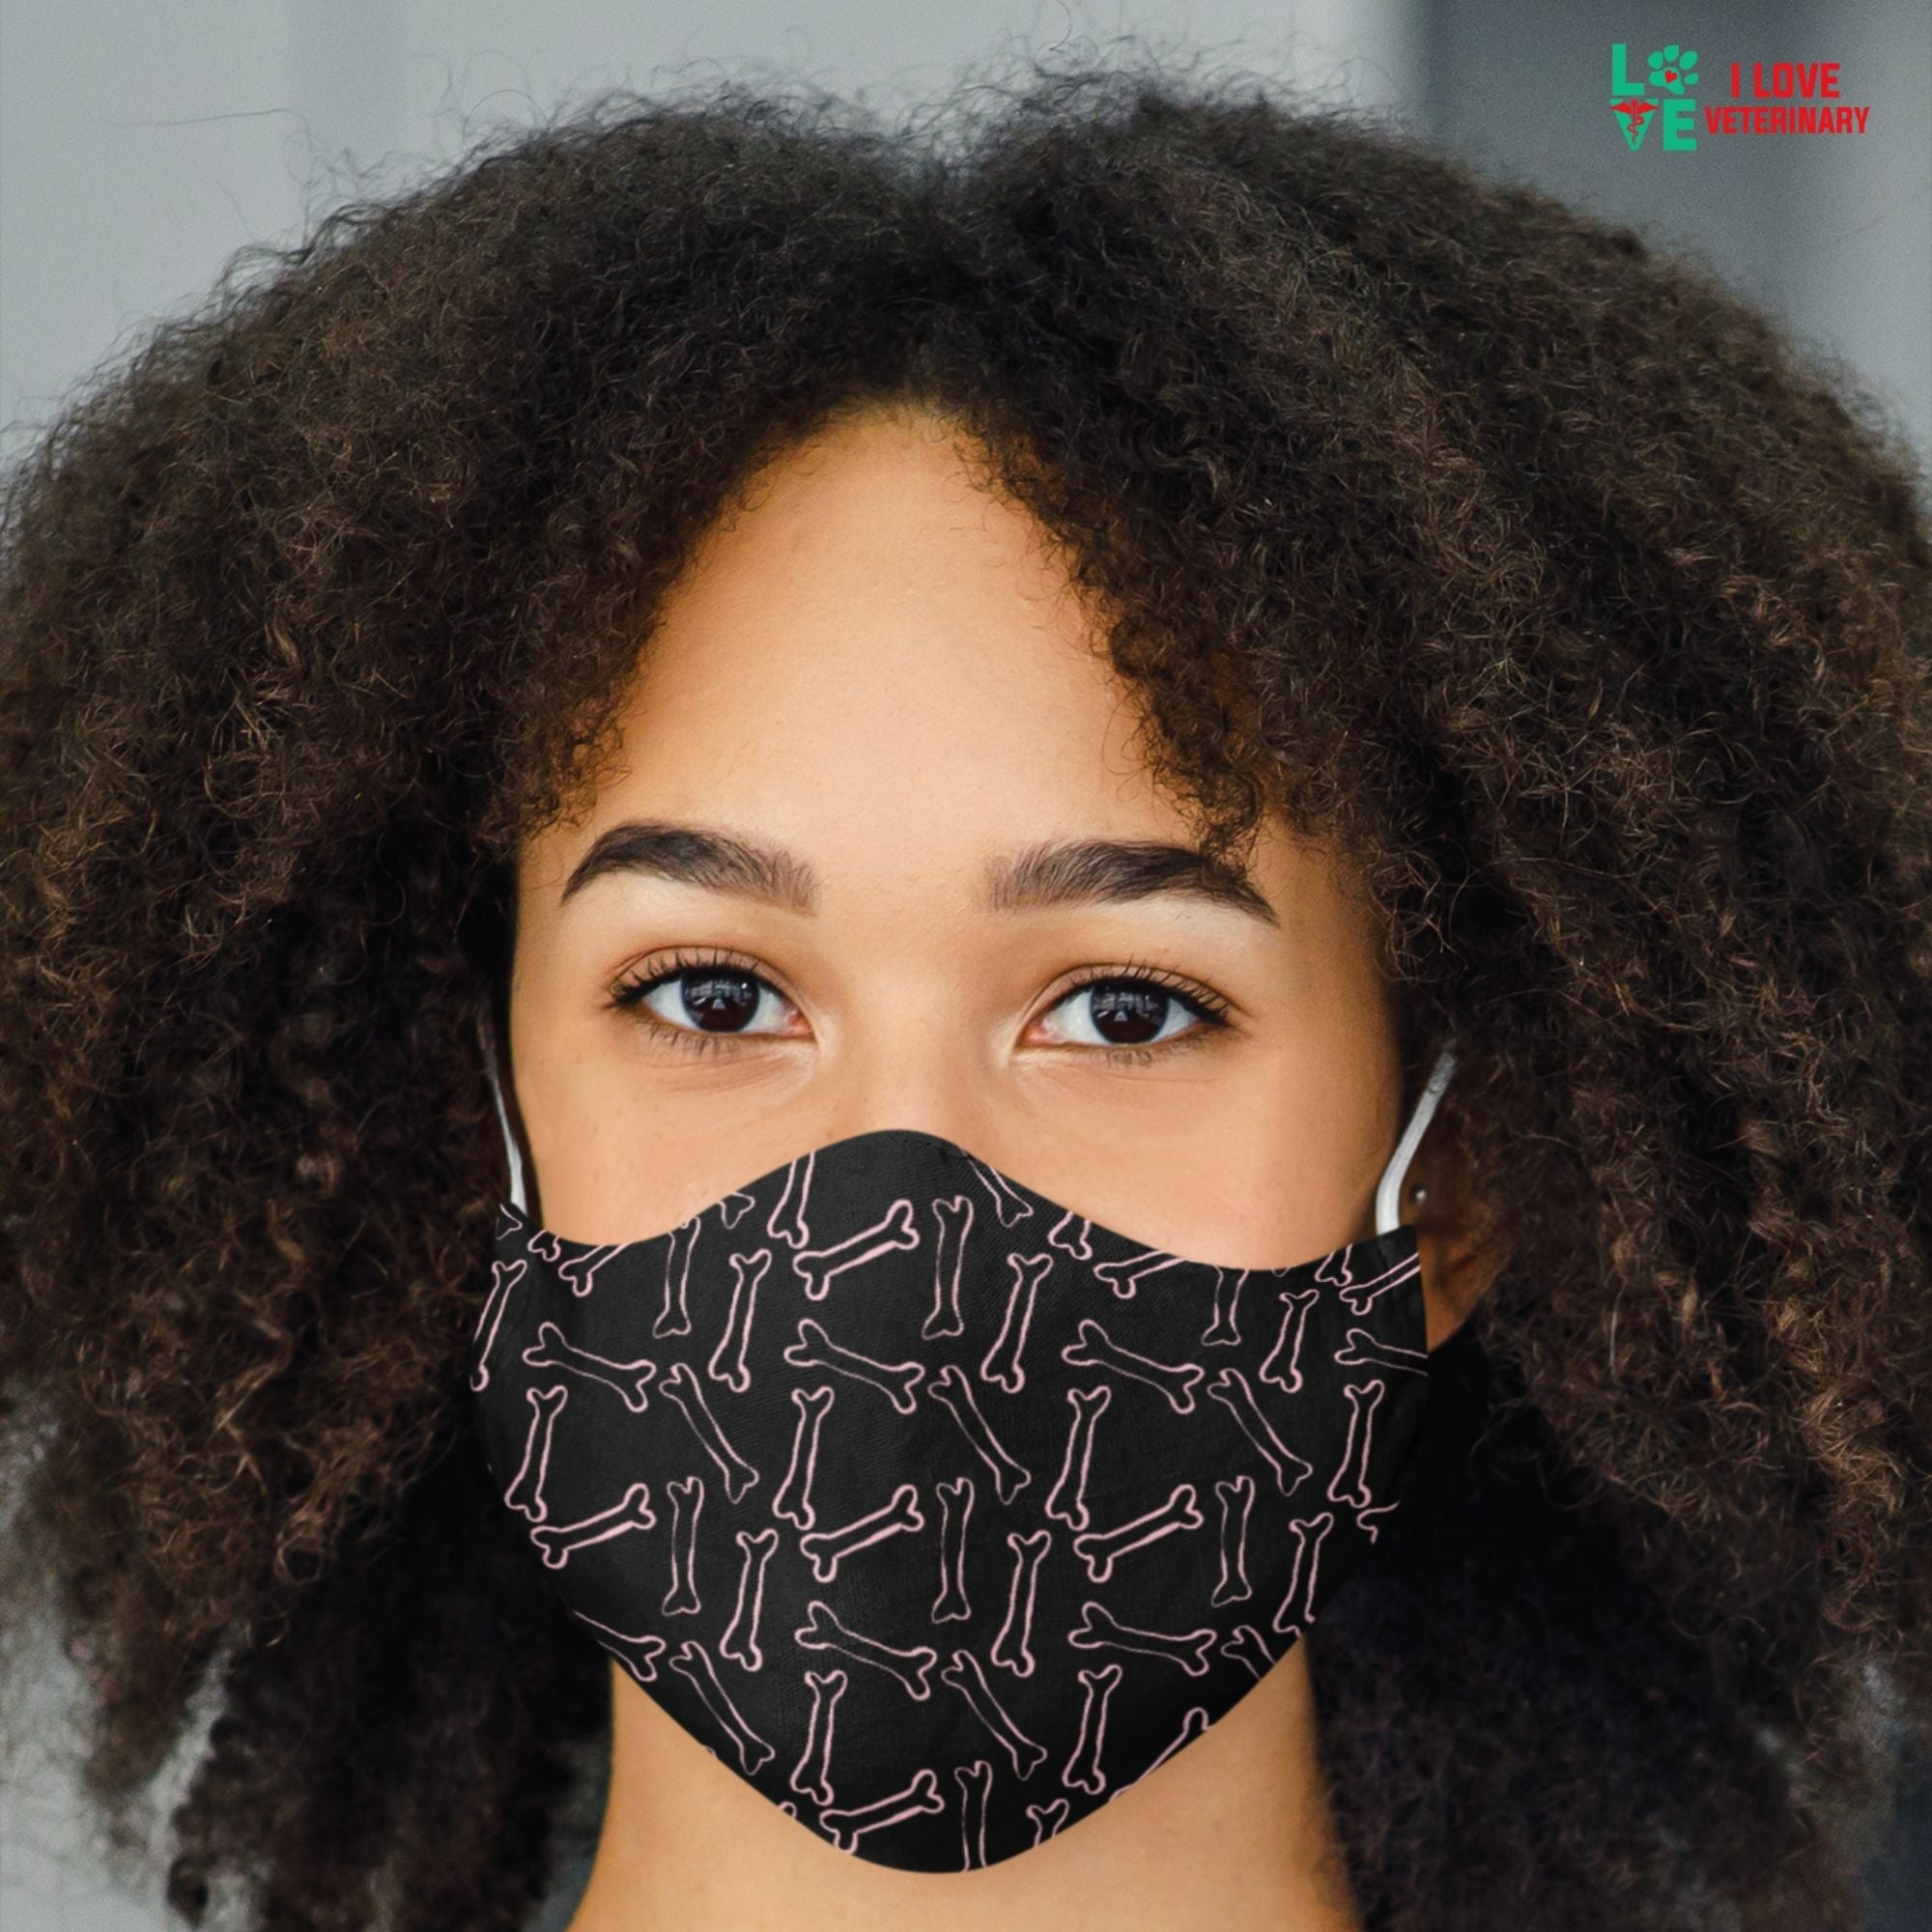 Pink bones black pattern Sublimation Face Mask-Accessories-I love Veterinary